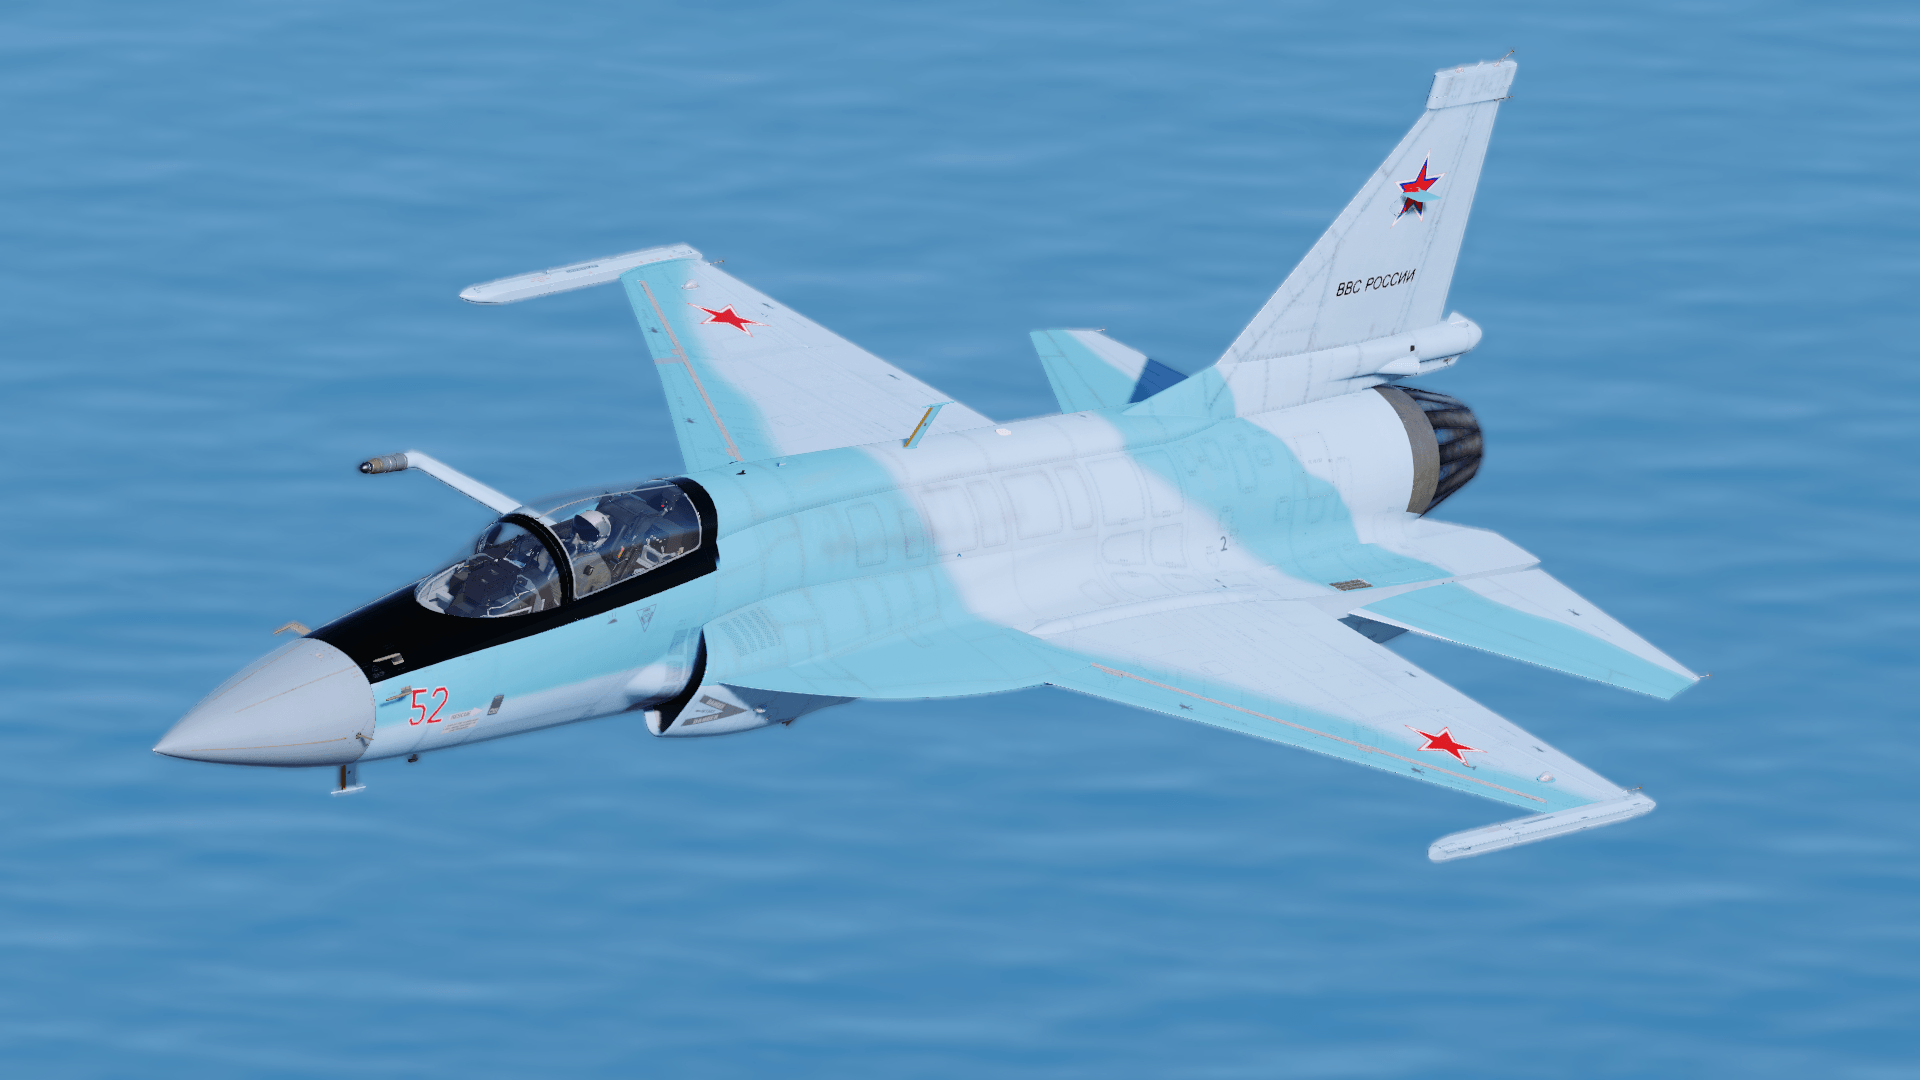 Fictional Russian Livery for Jf-17 V 2.0